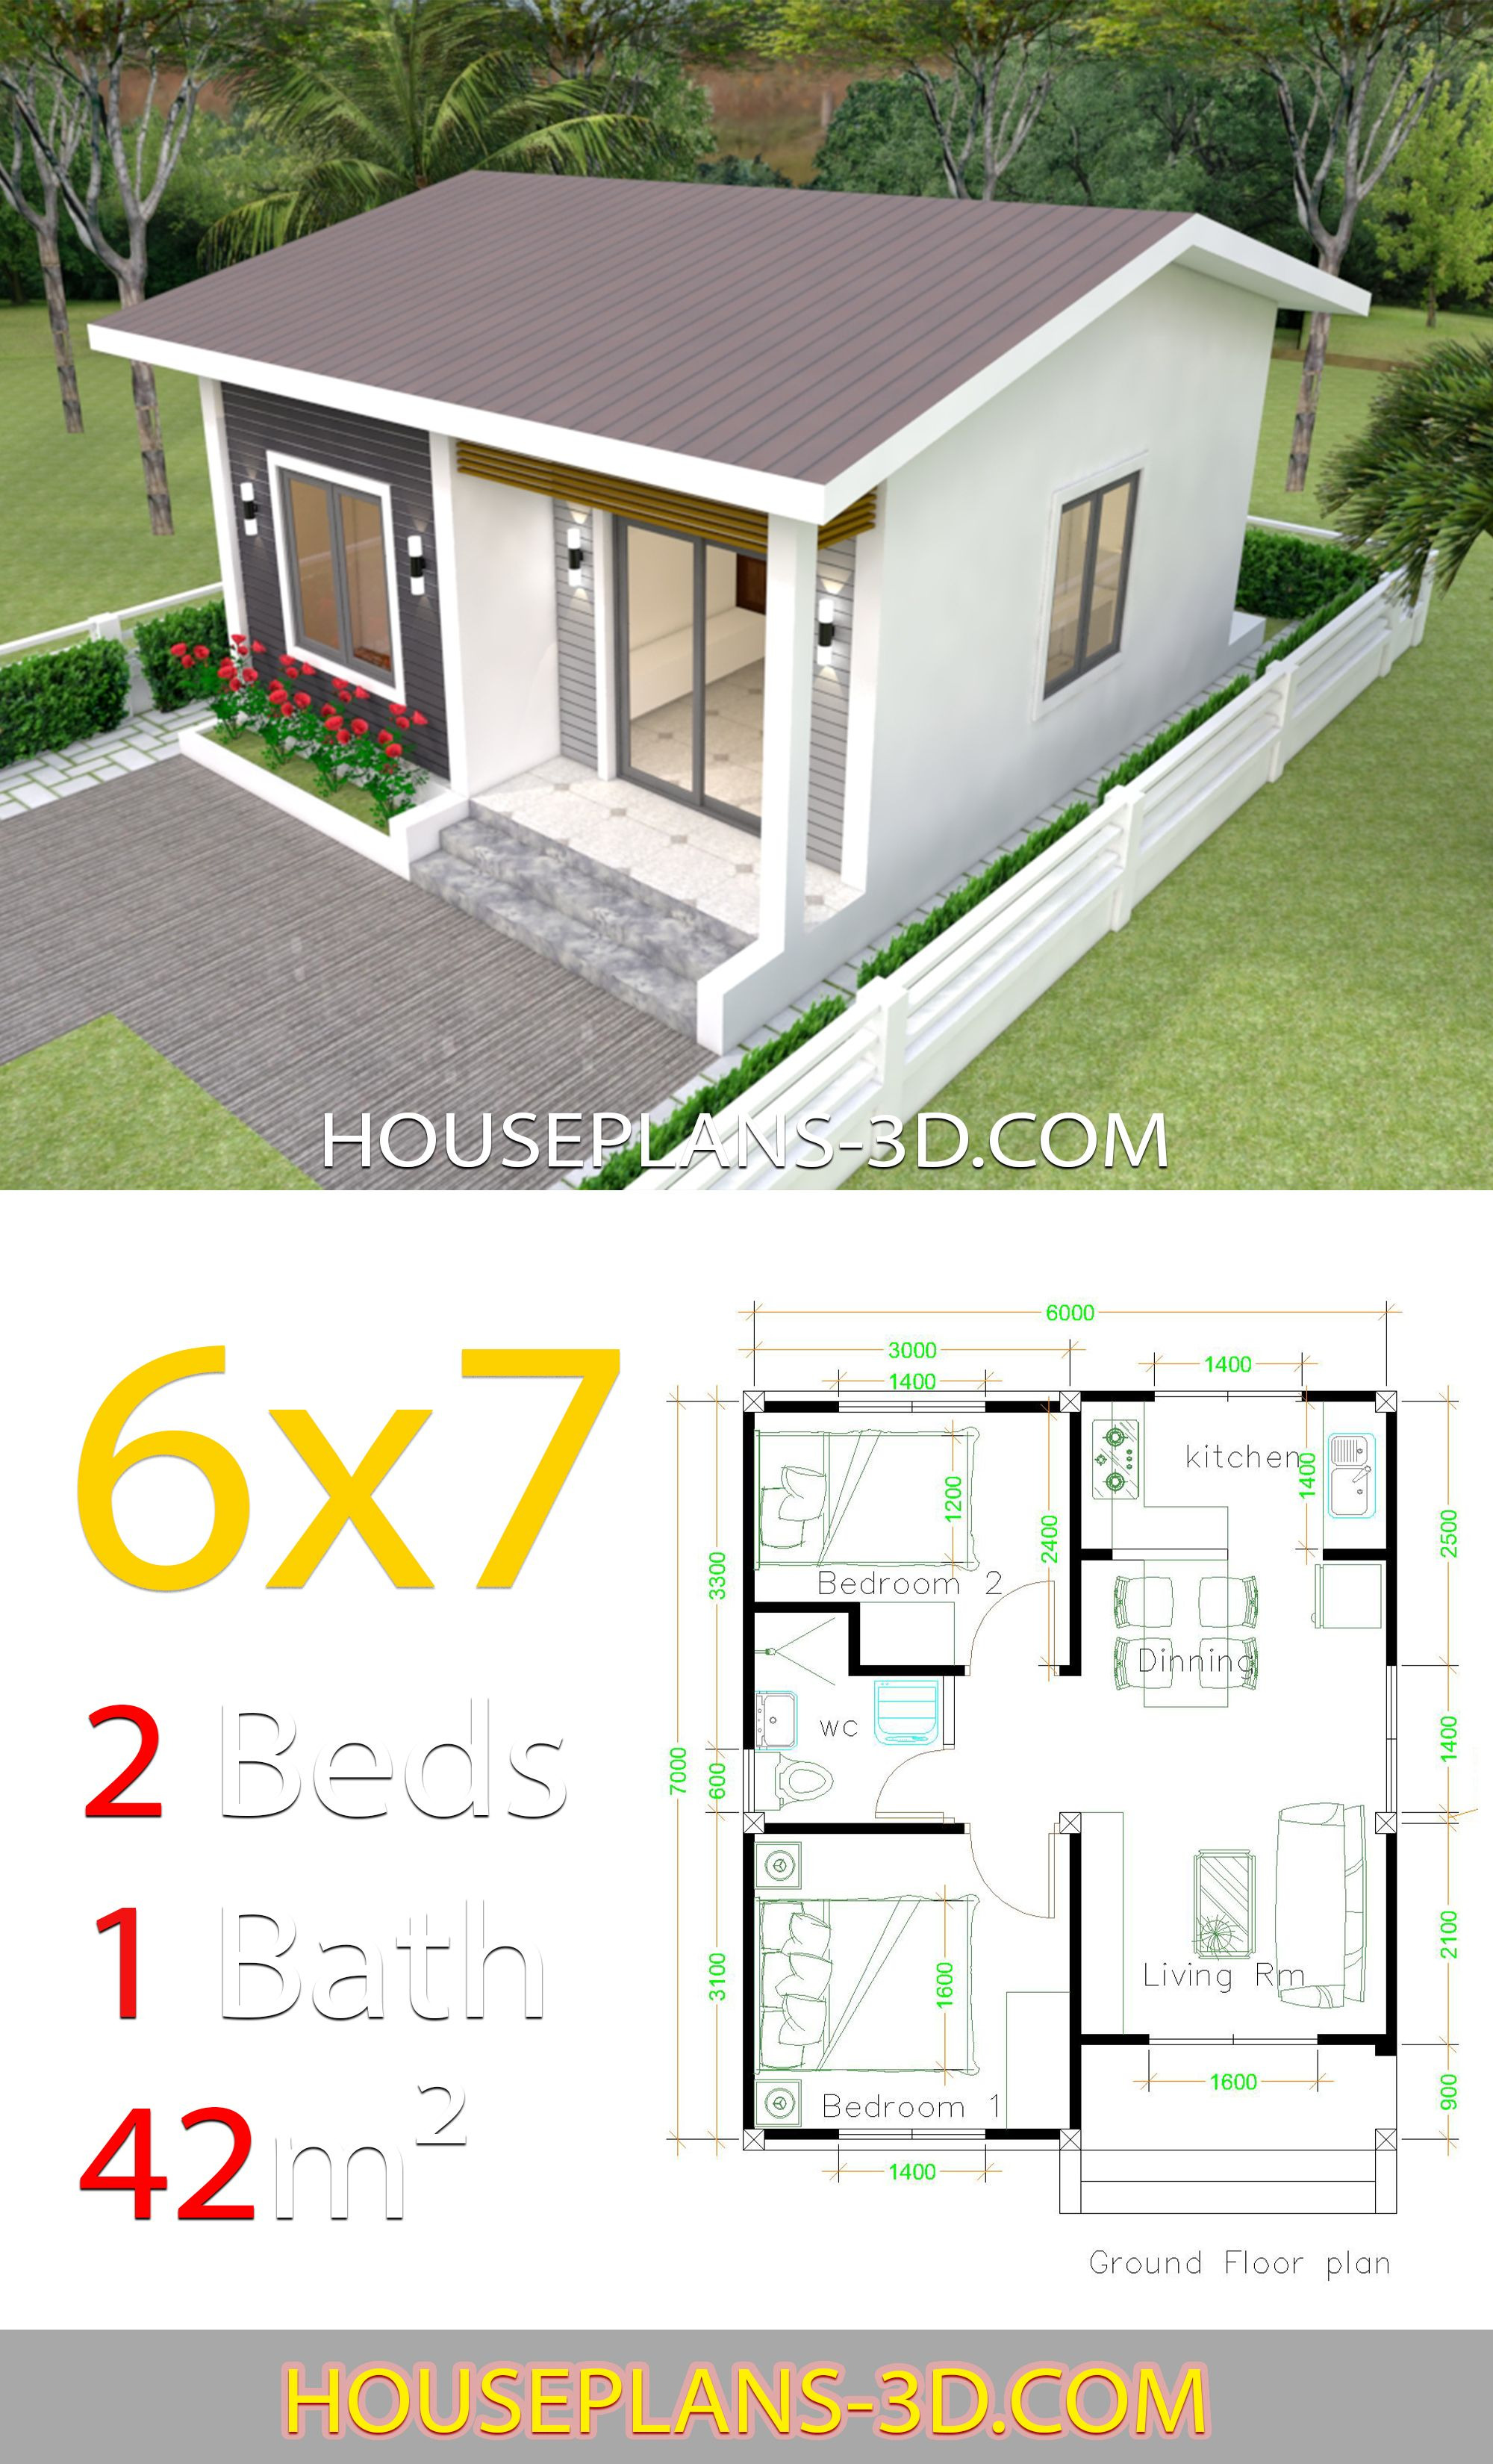 Small 2 Bedroom House Plans Fresh House Design 6x7 with 2 Bedrooms